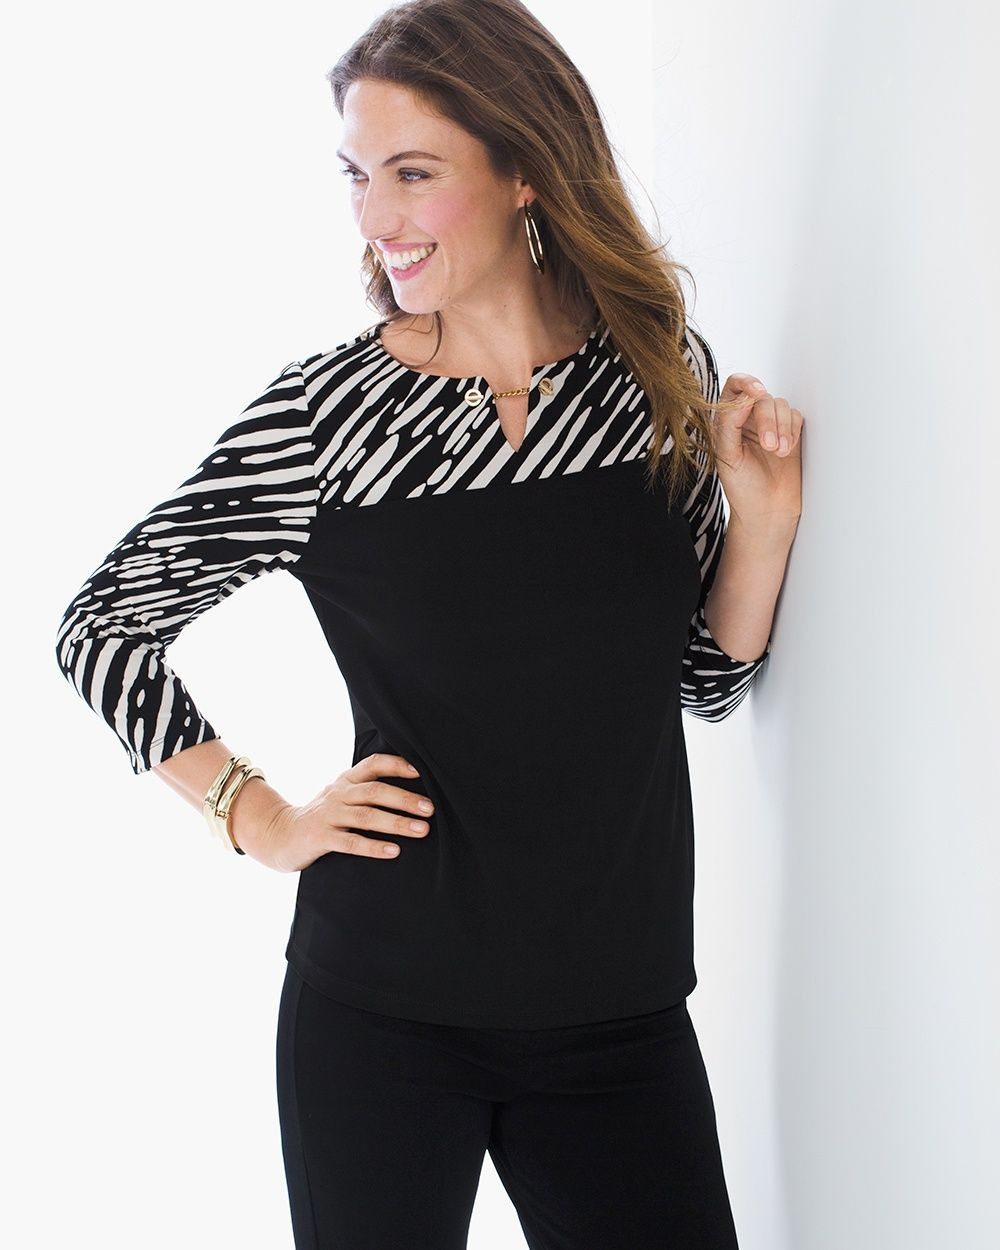 bfb7af6529e8af Chico's Women's Travelers Classic Zebra Chic Printed Top, Black, Size: 4 (20